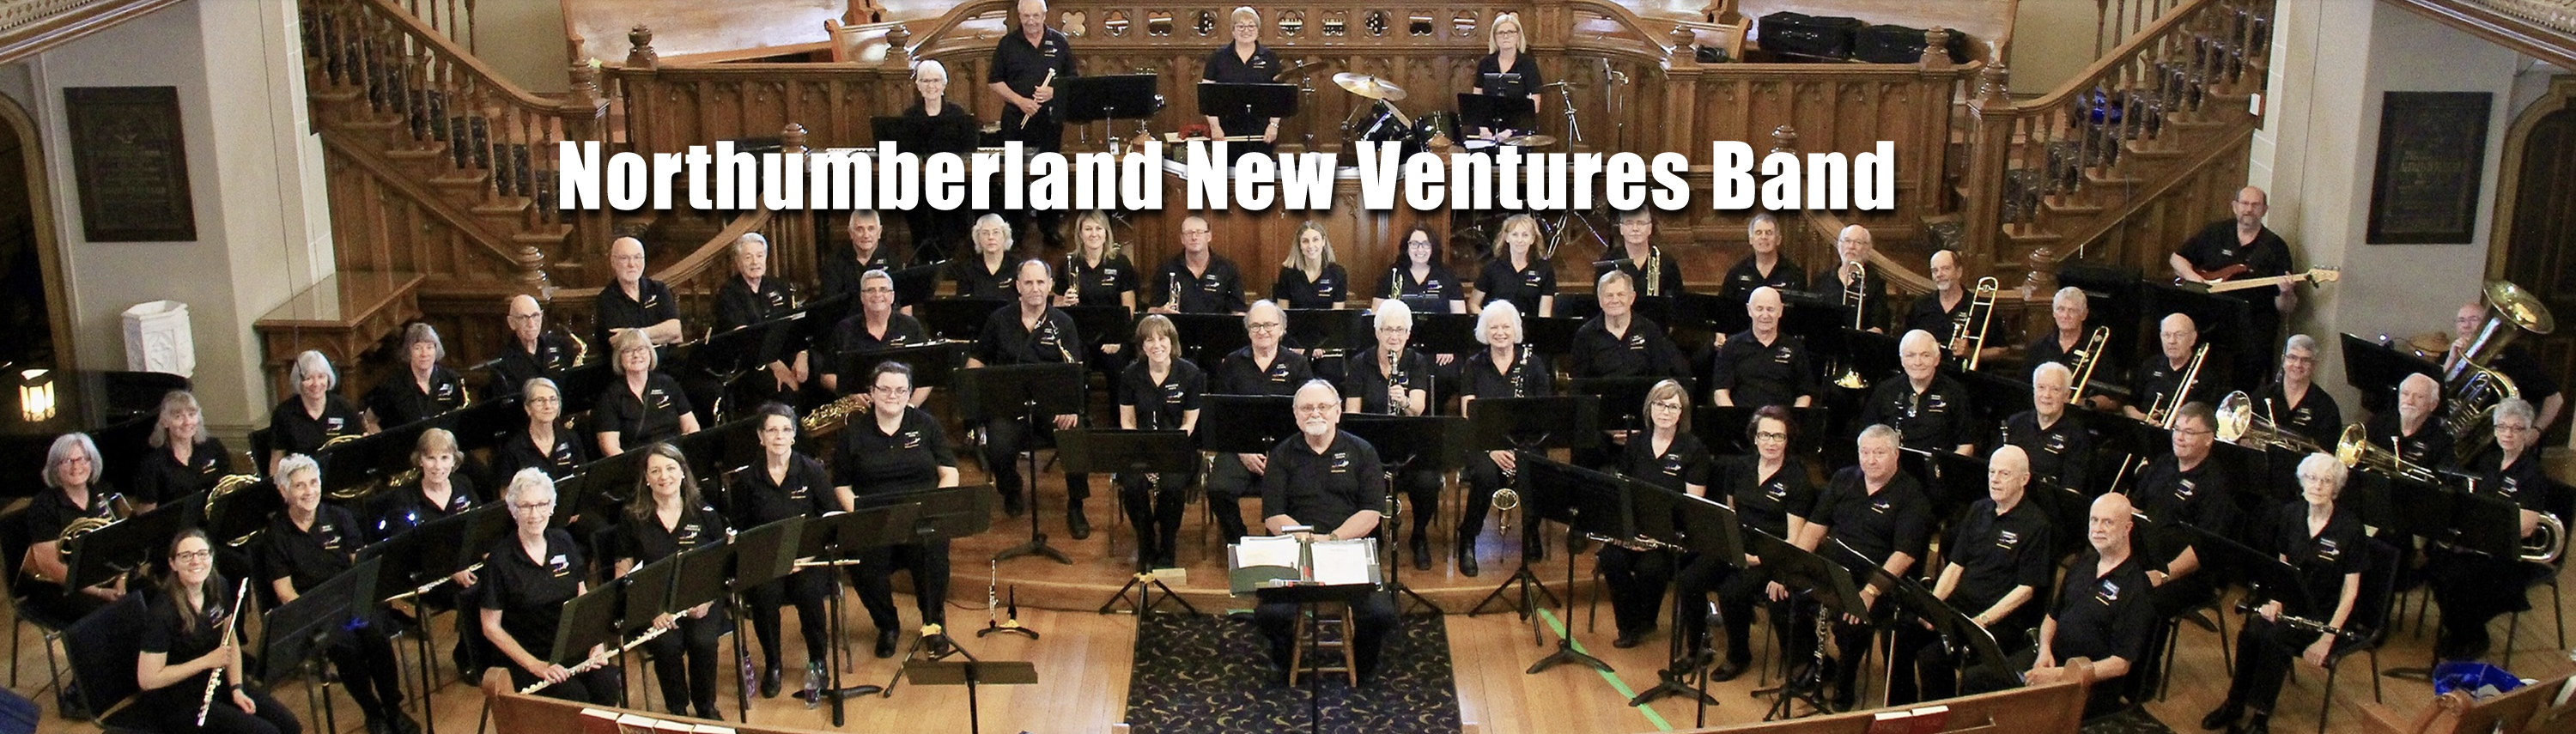 New Ventures Band